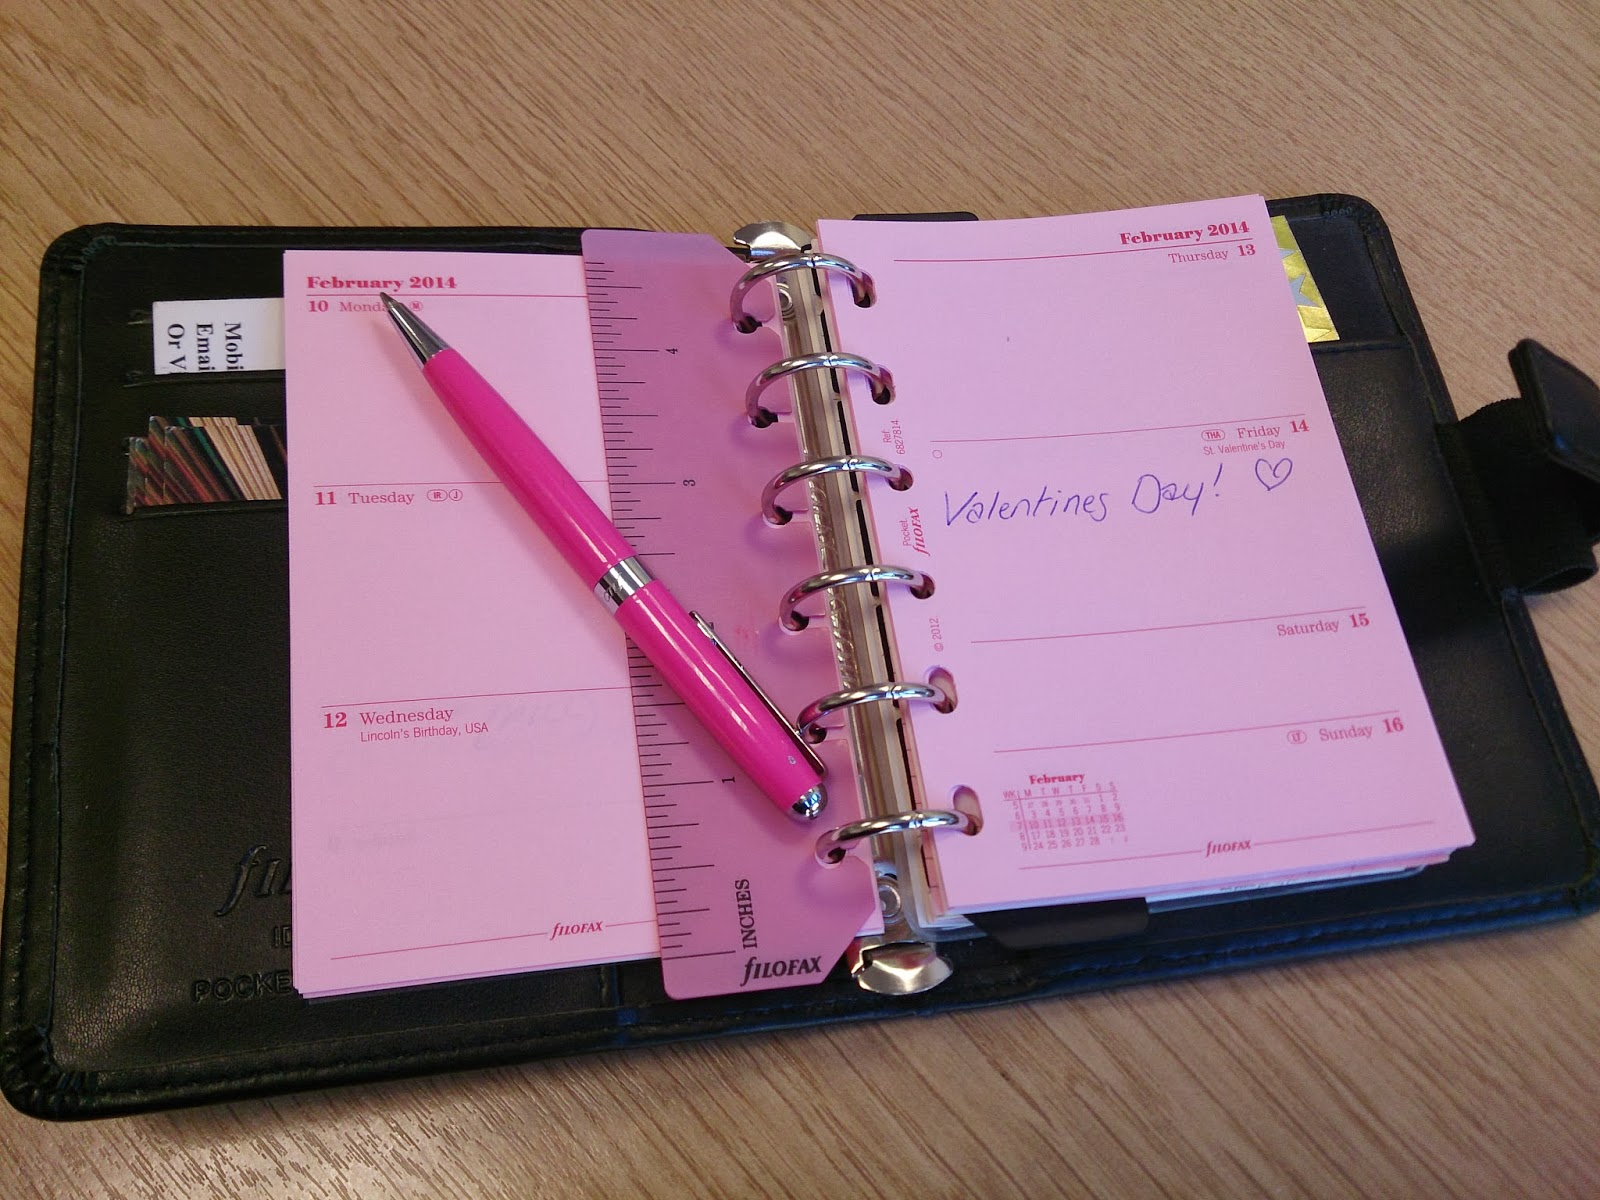 filofax personal organiser organizer pocket diary black pink breast cancer pen inserts refills pages paper ray-bans organised organisation calendar address book